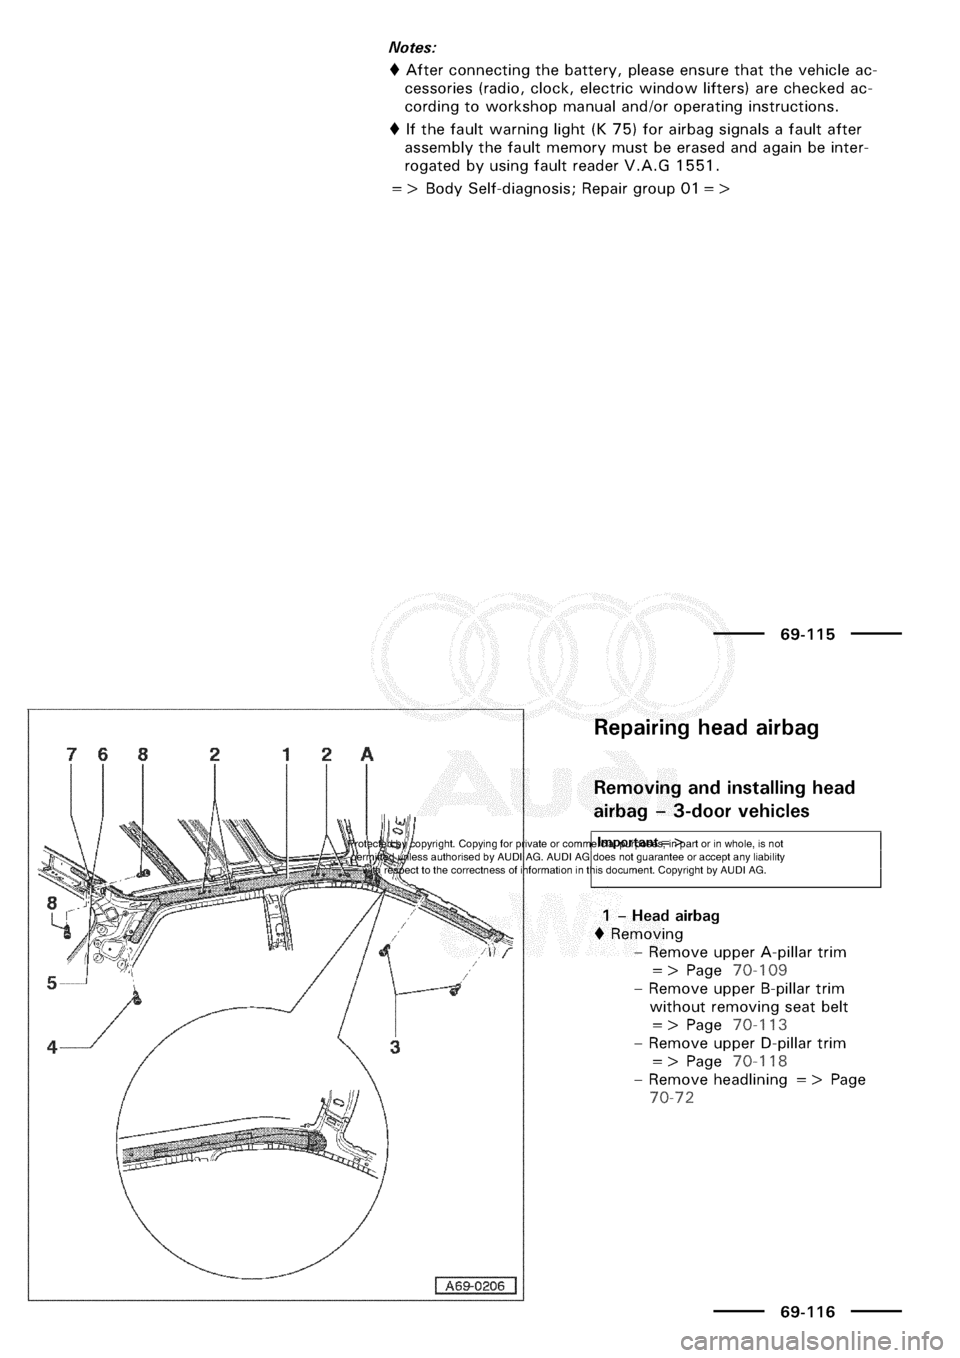 Wiring Diagram For 1997 Audi A6